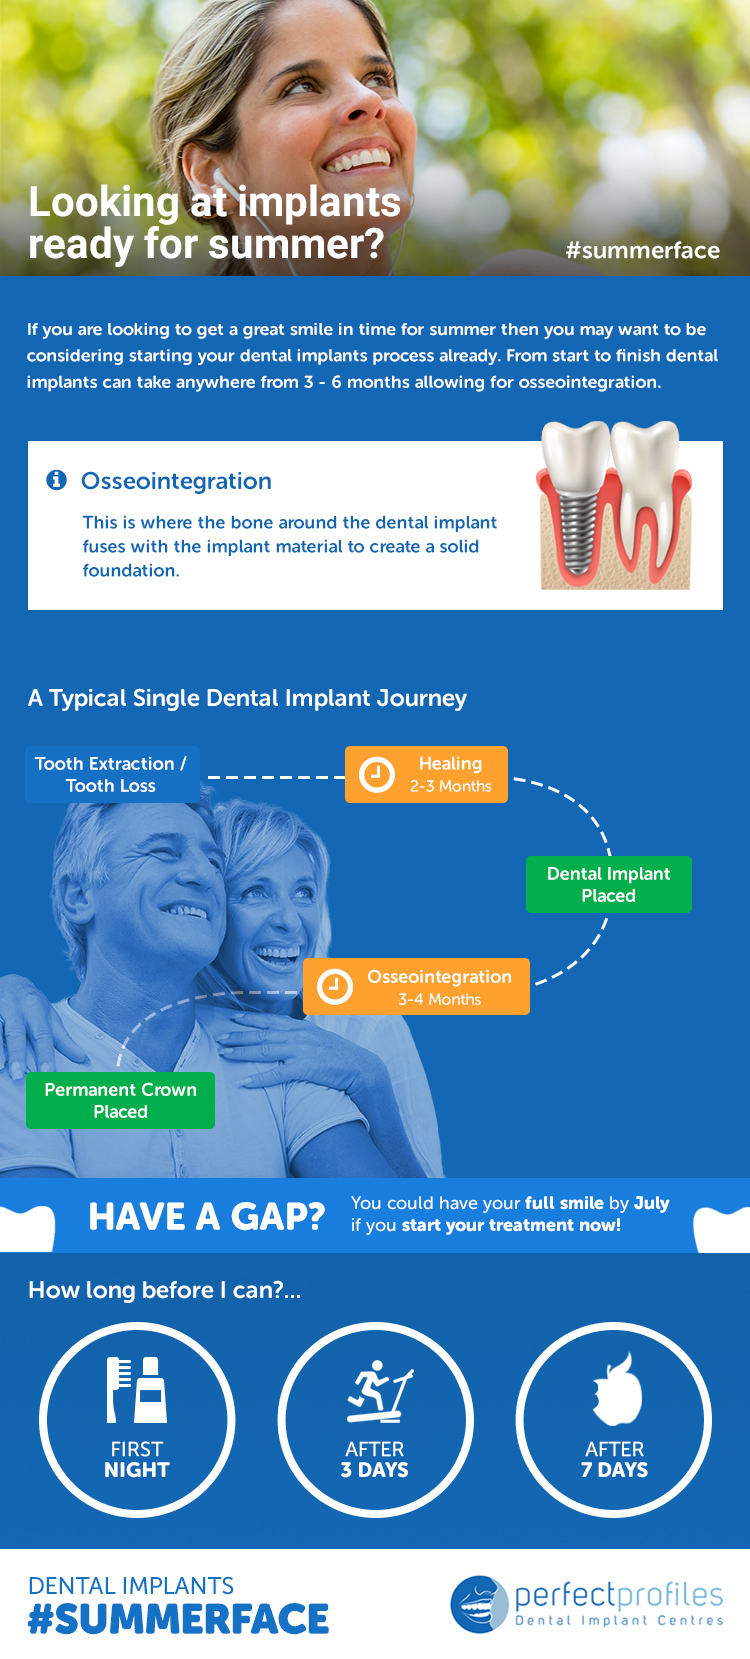 Looking at implants ready for summer? You may want to be considering starting your dental implants process already